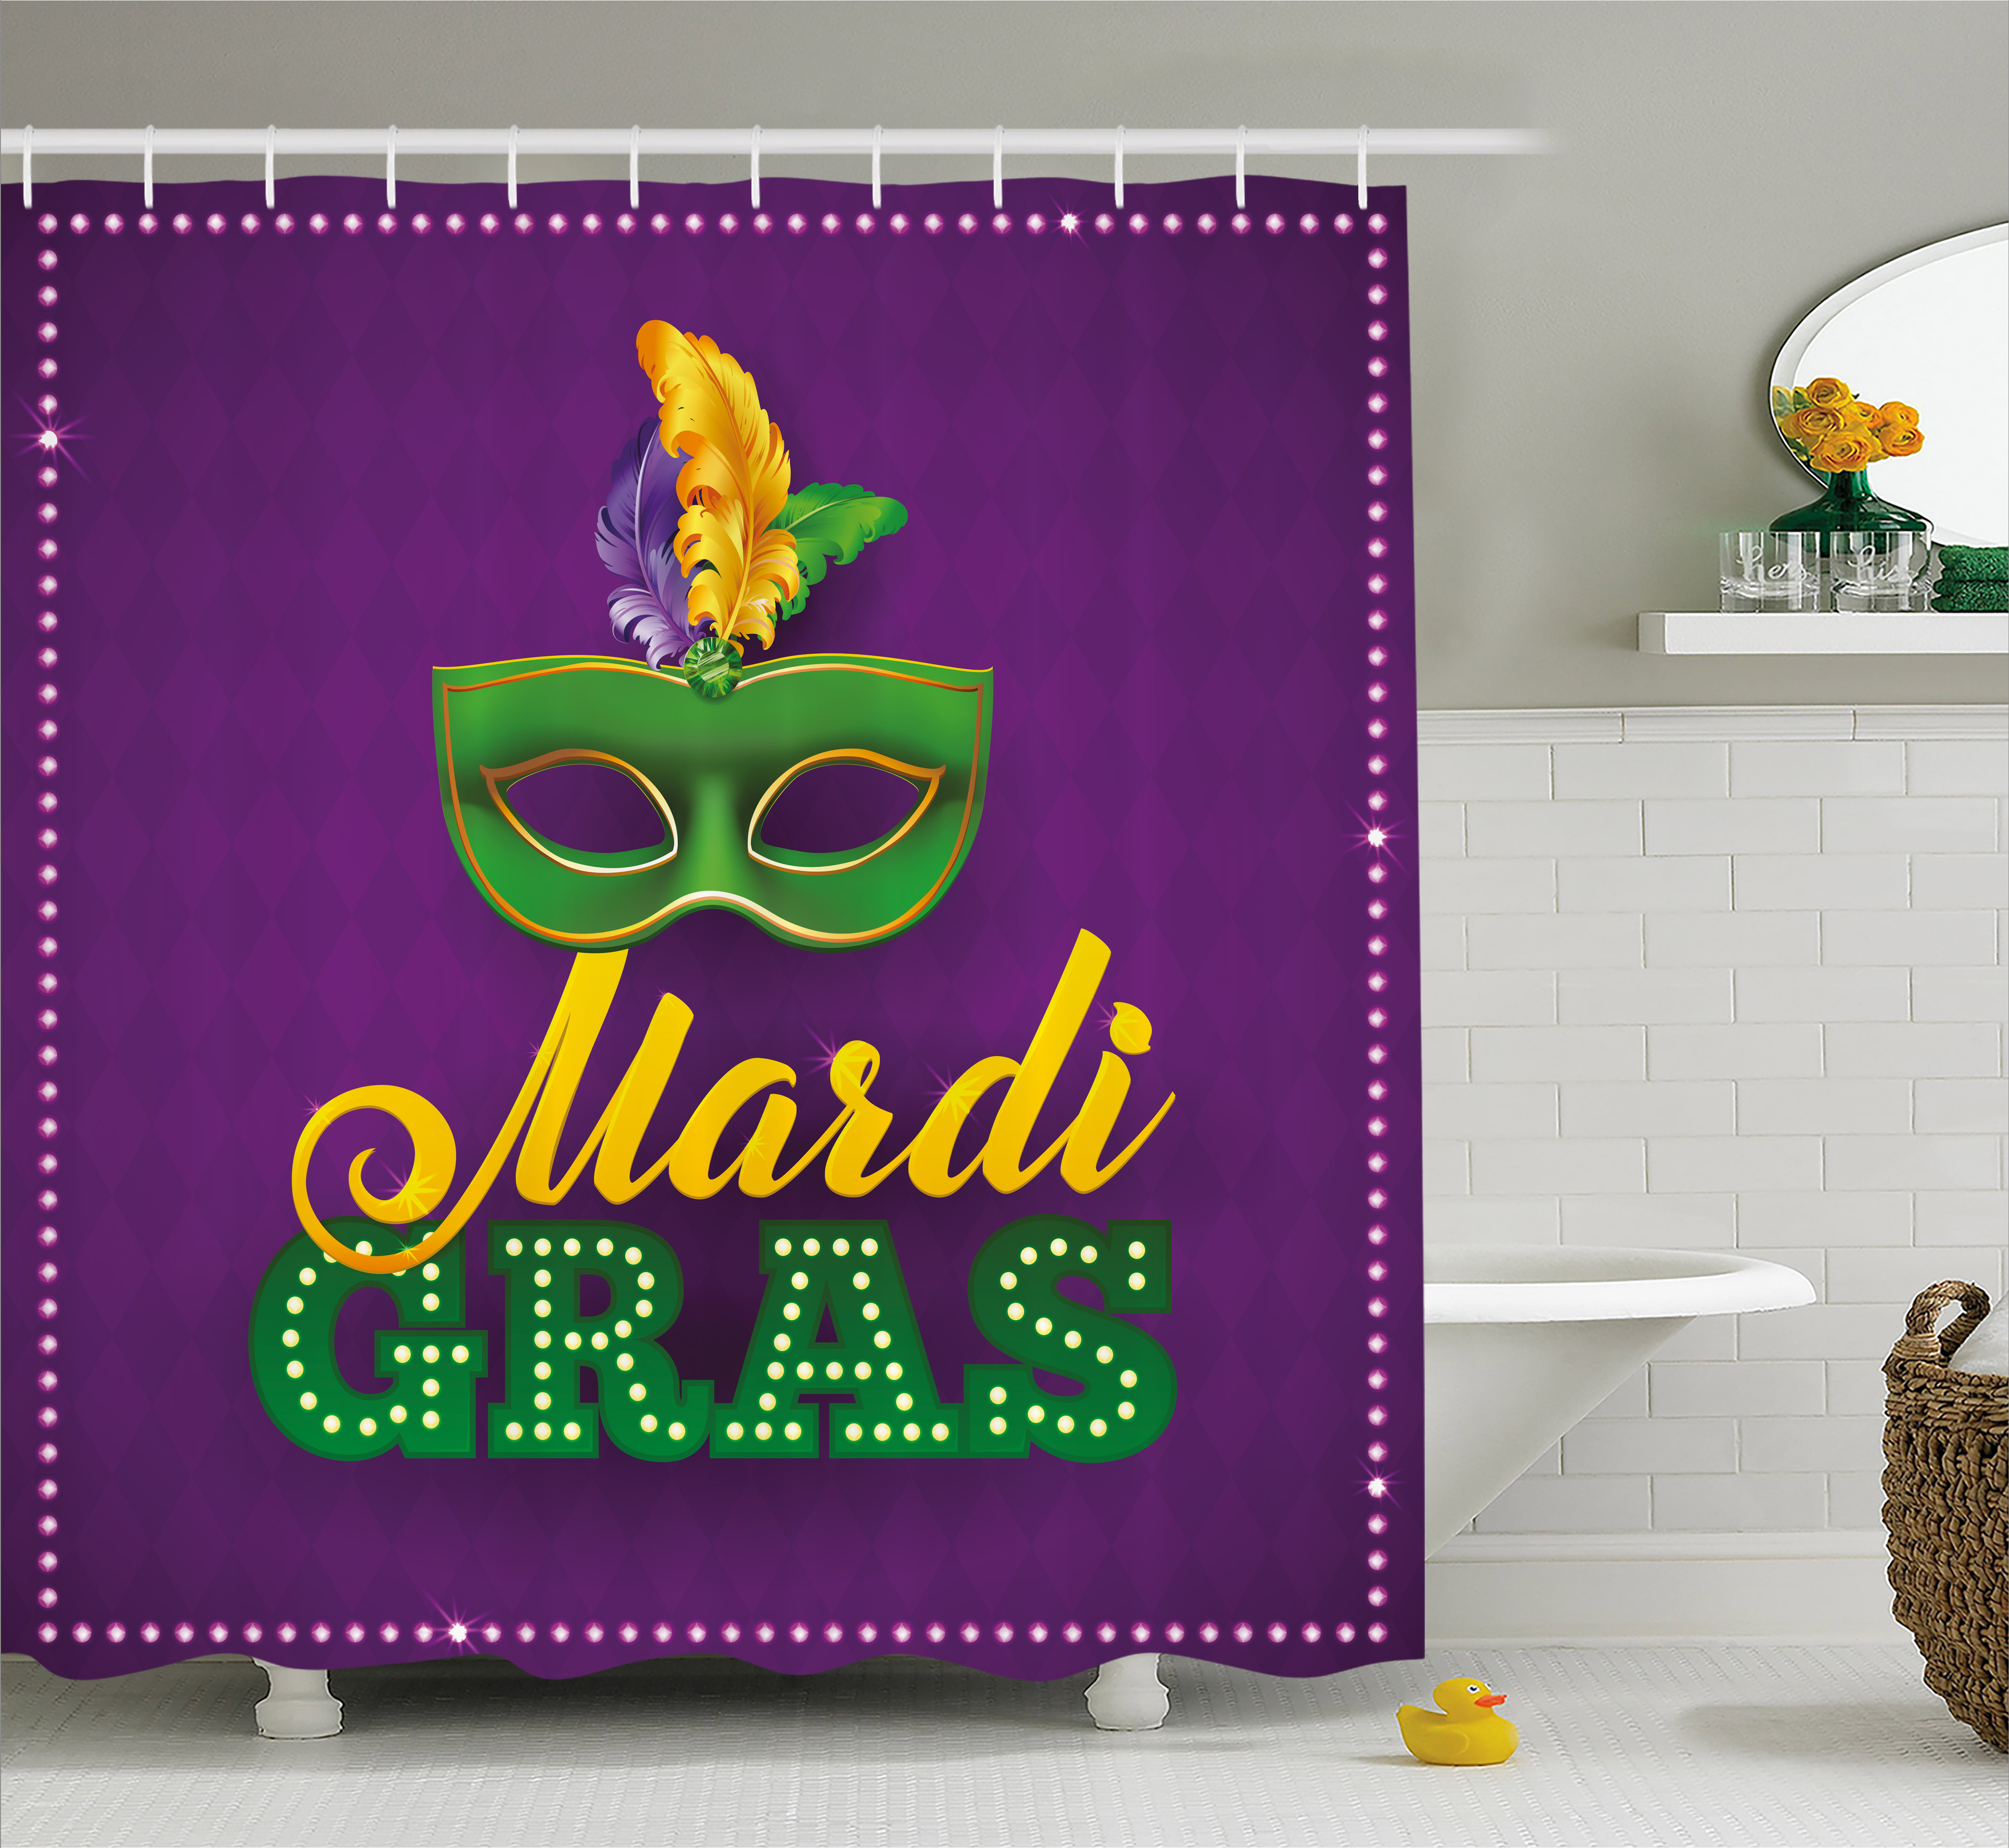 Image of: Purple And Green Shower Curtains On Mardi Gras Shower Curtain Green Mask With Colorful Feathers On Purple Backdrop Styled Calligraphy